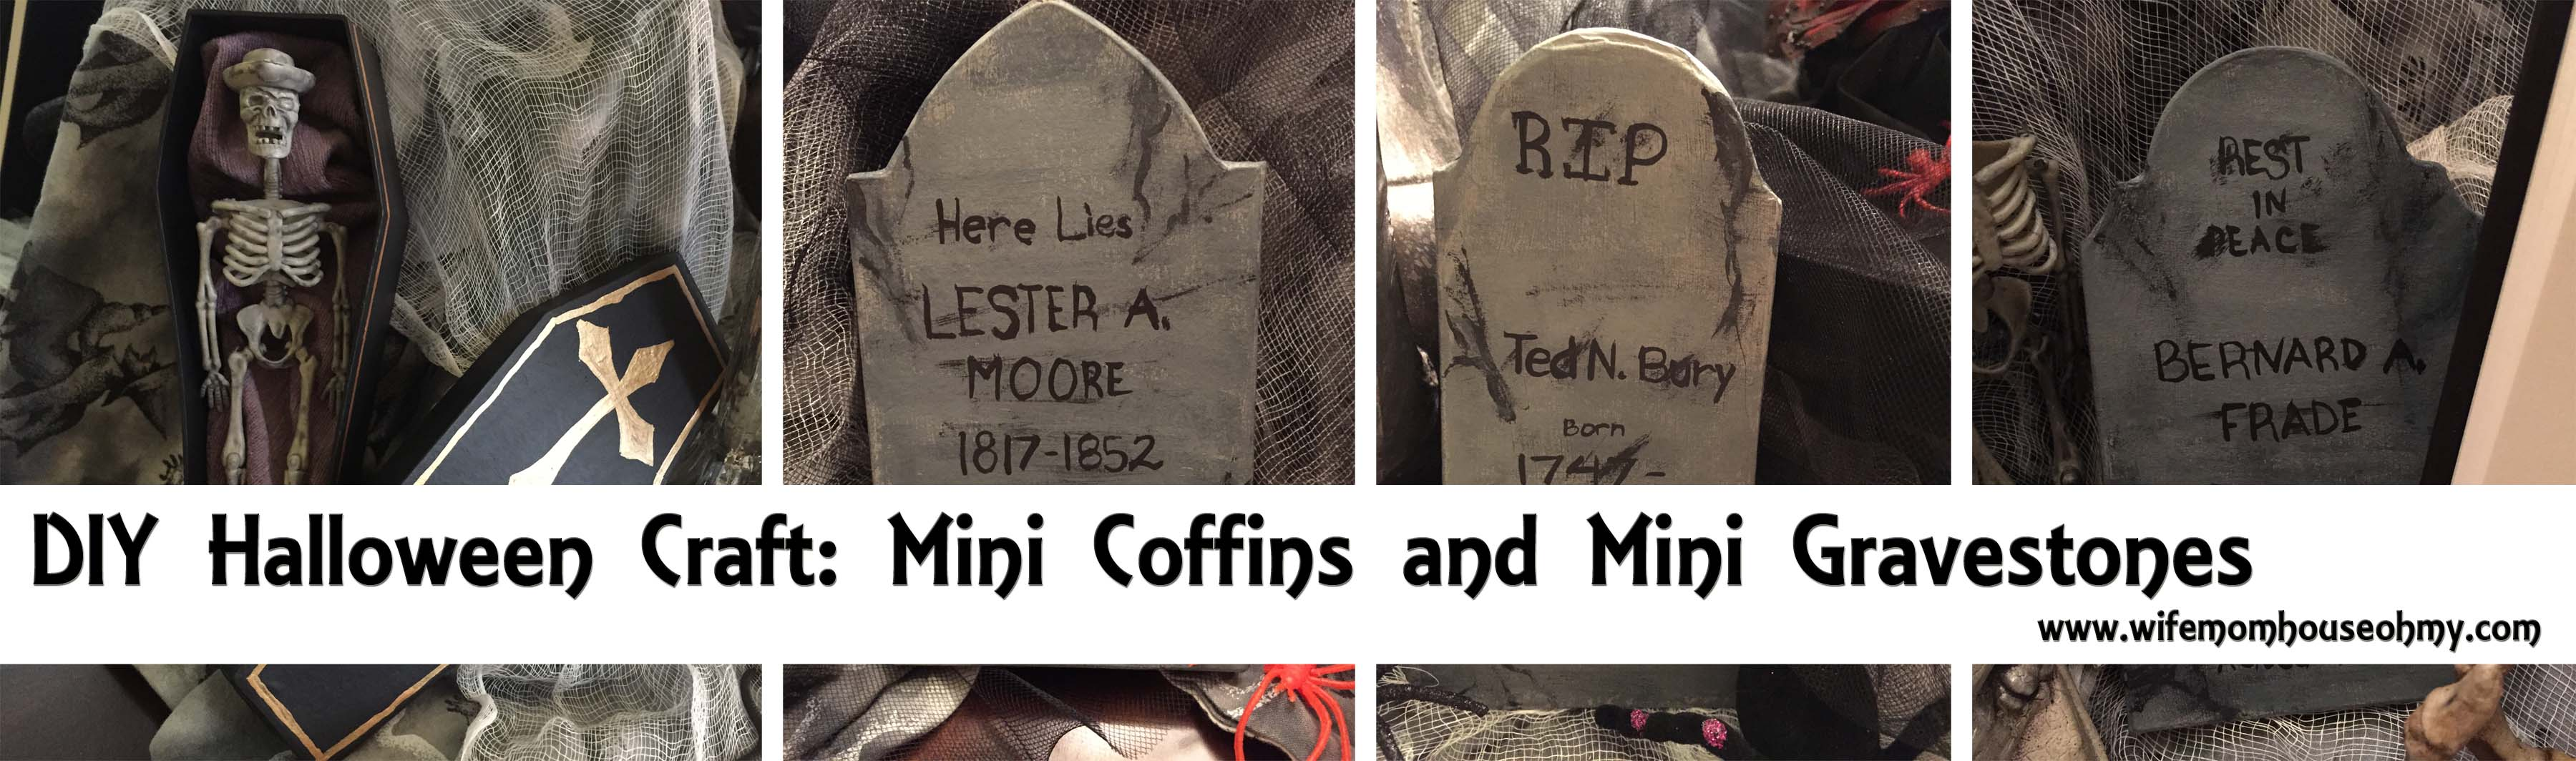 diy halloween craft: mini coffins and mini gravestones |